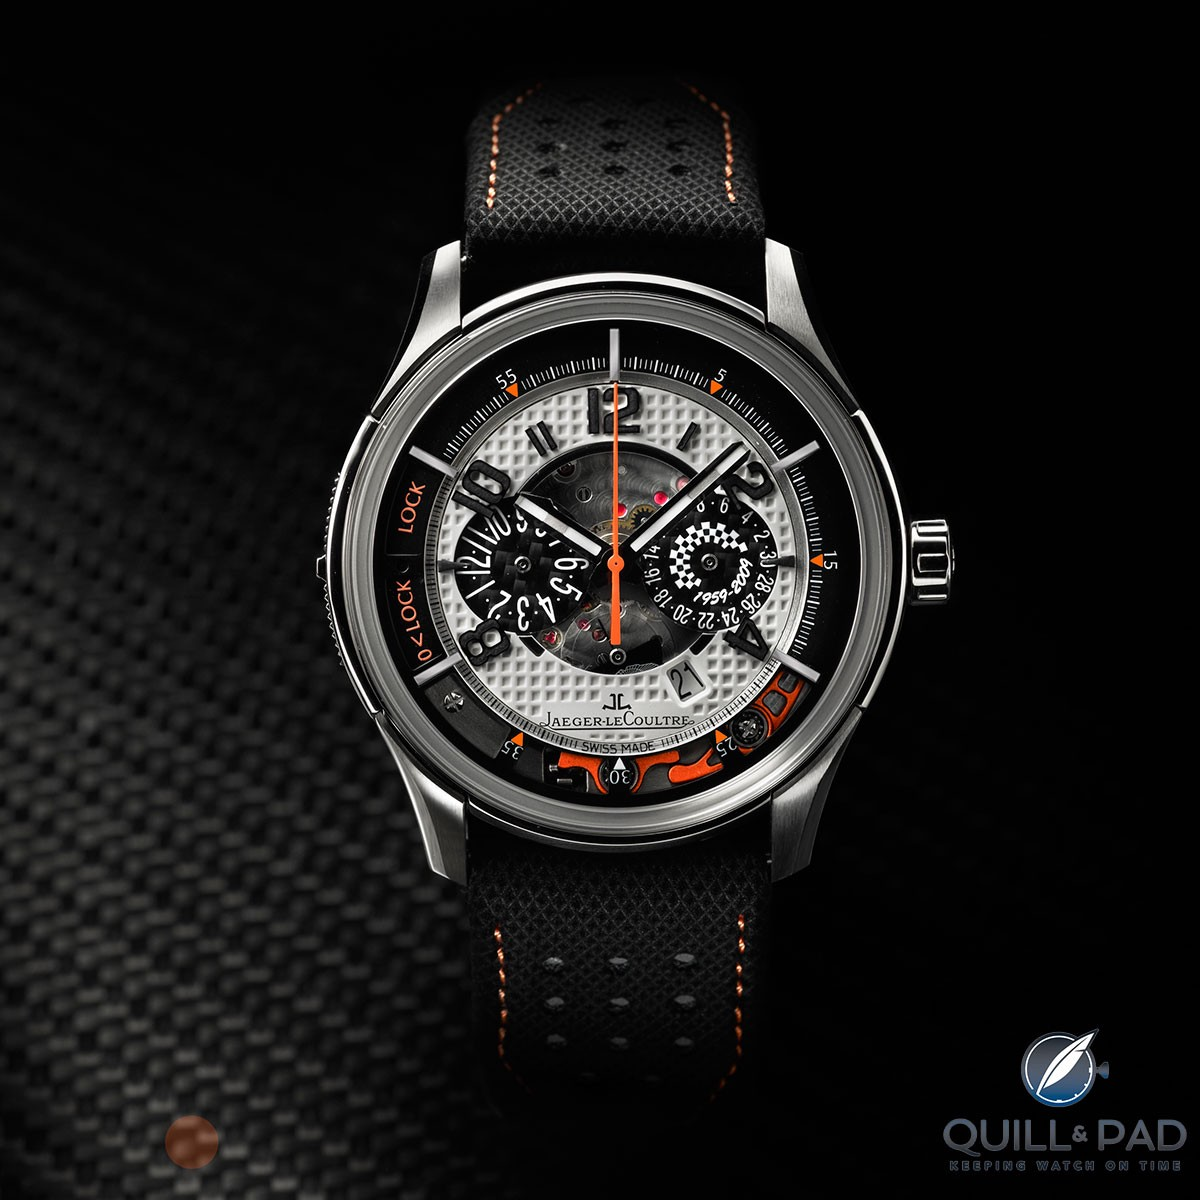 Jaeger-LeCoultre Amvox 2 Chronograph Racing